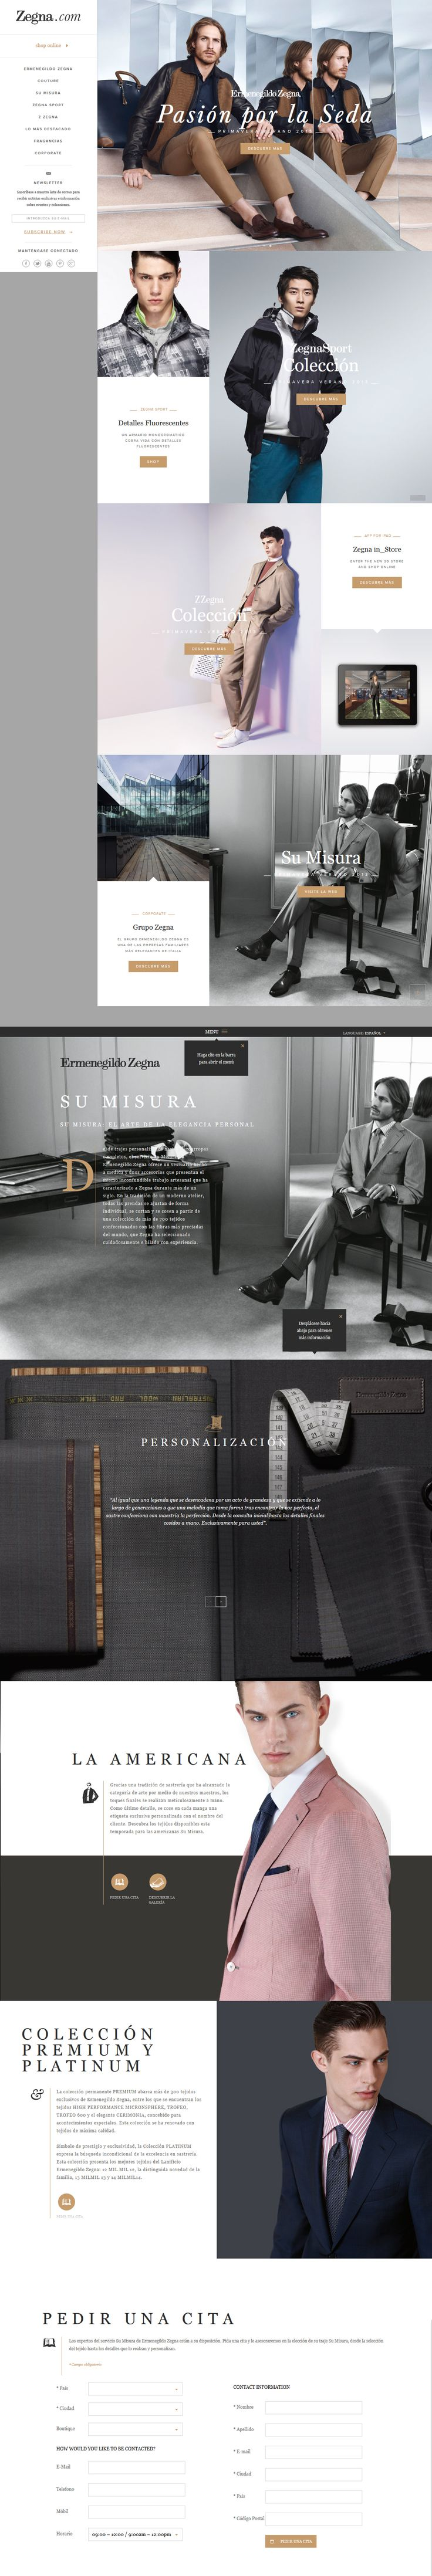 New Zegna layout. Web Graphic  Design mockup. Fashion E-Commerce.